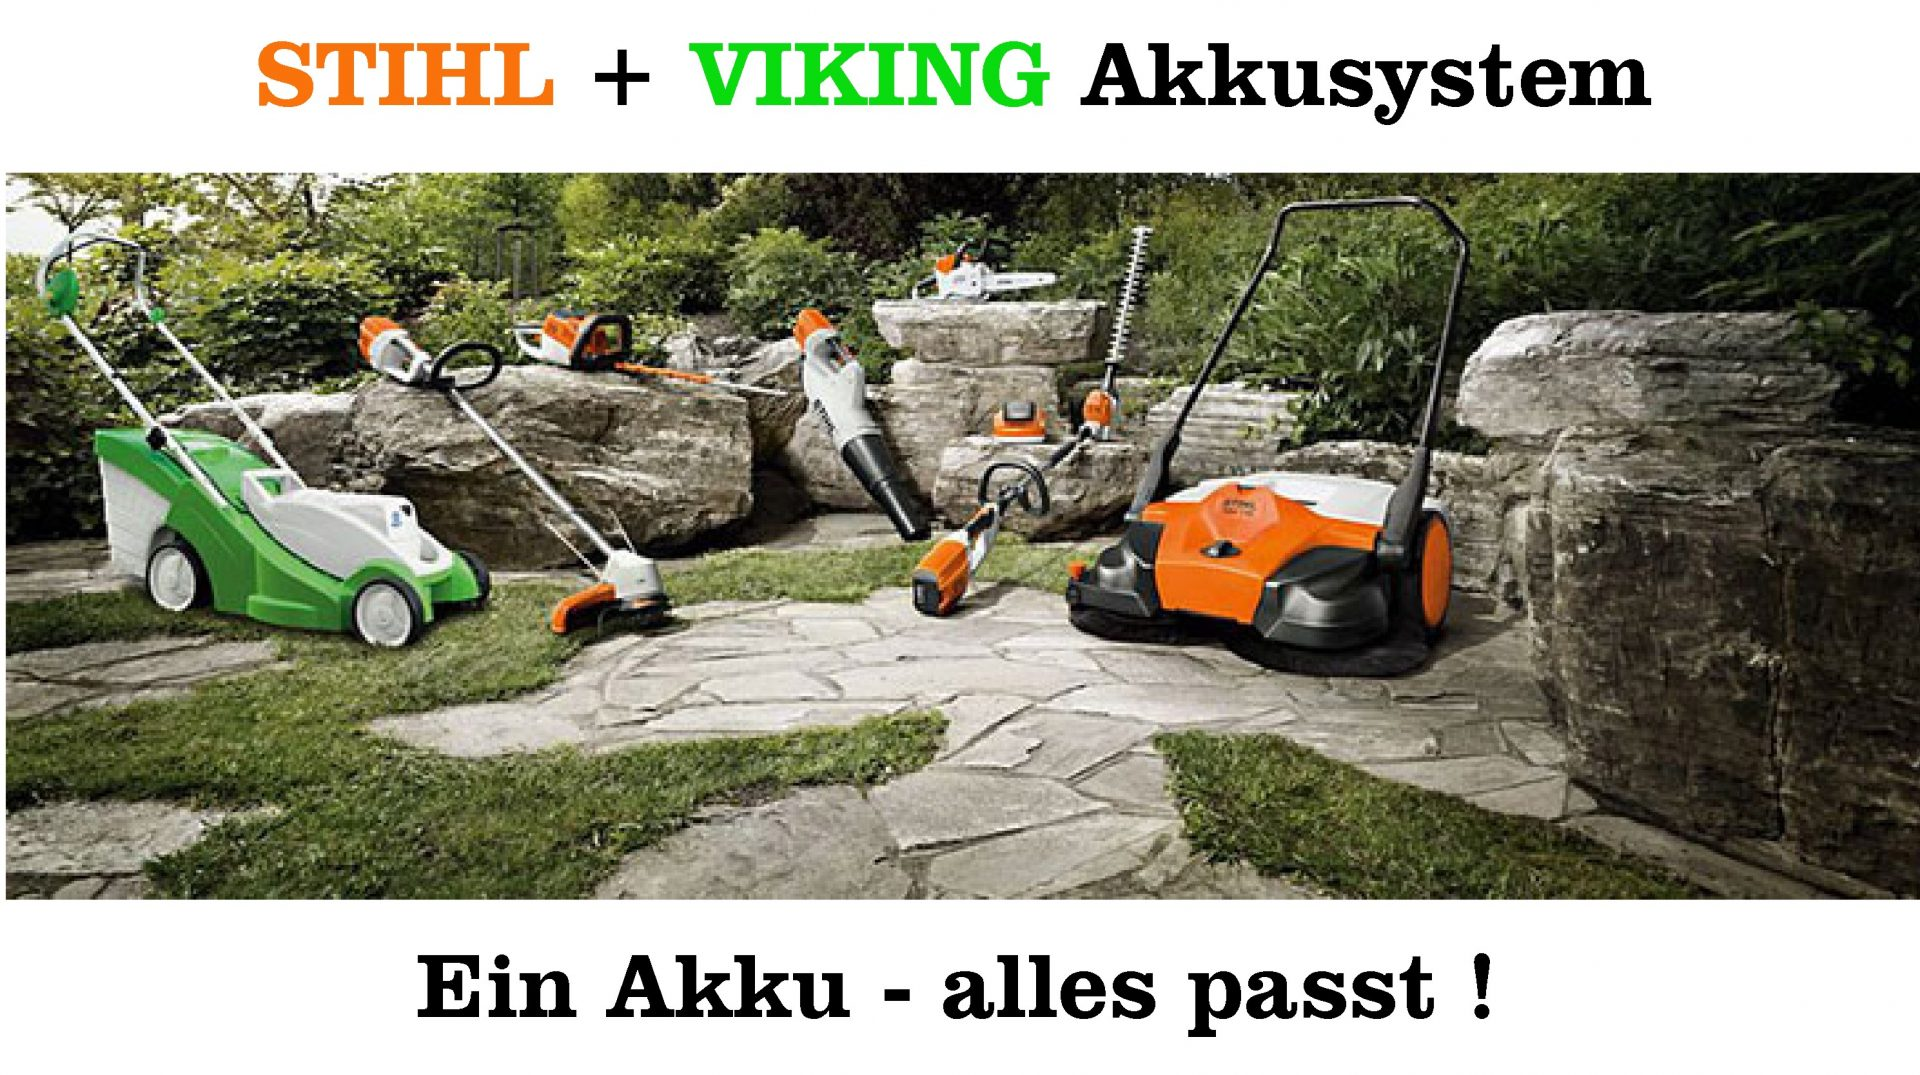 stihl und viking akkusystem s llner motorger te gmbh. Black Bedroom Furniture Sets. Home Design Ideas